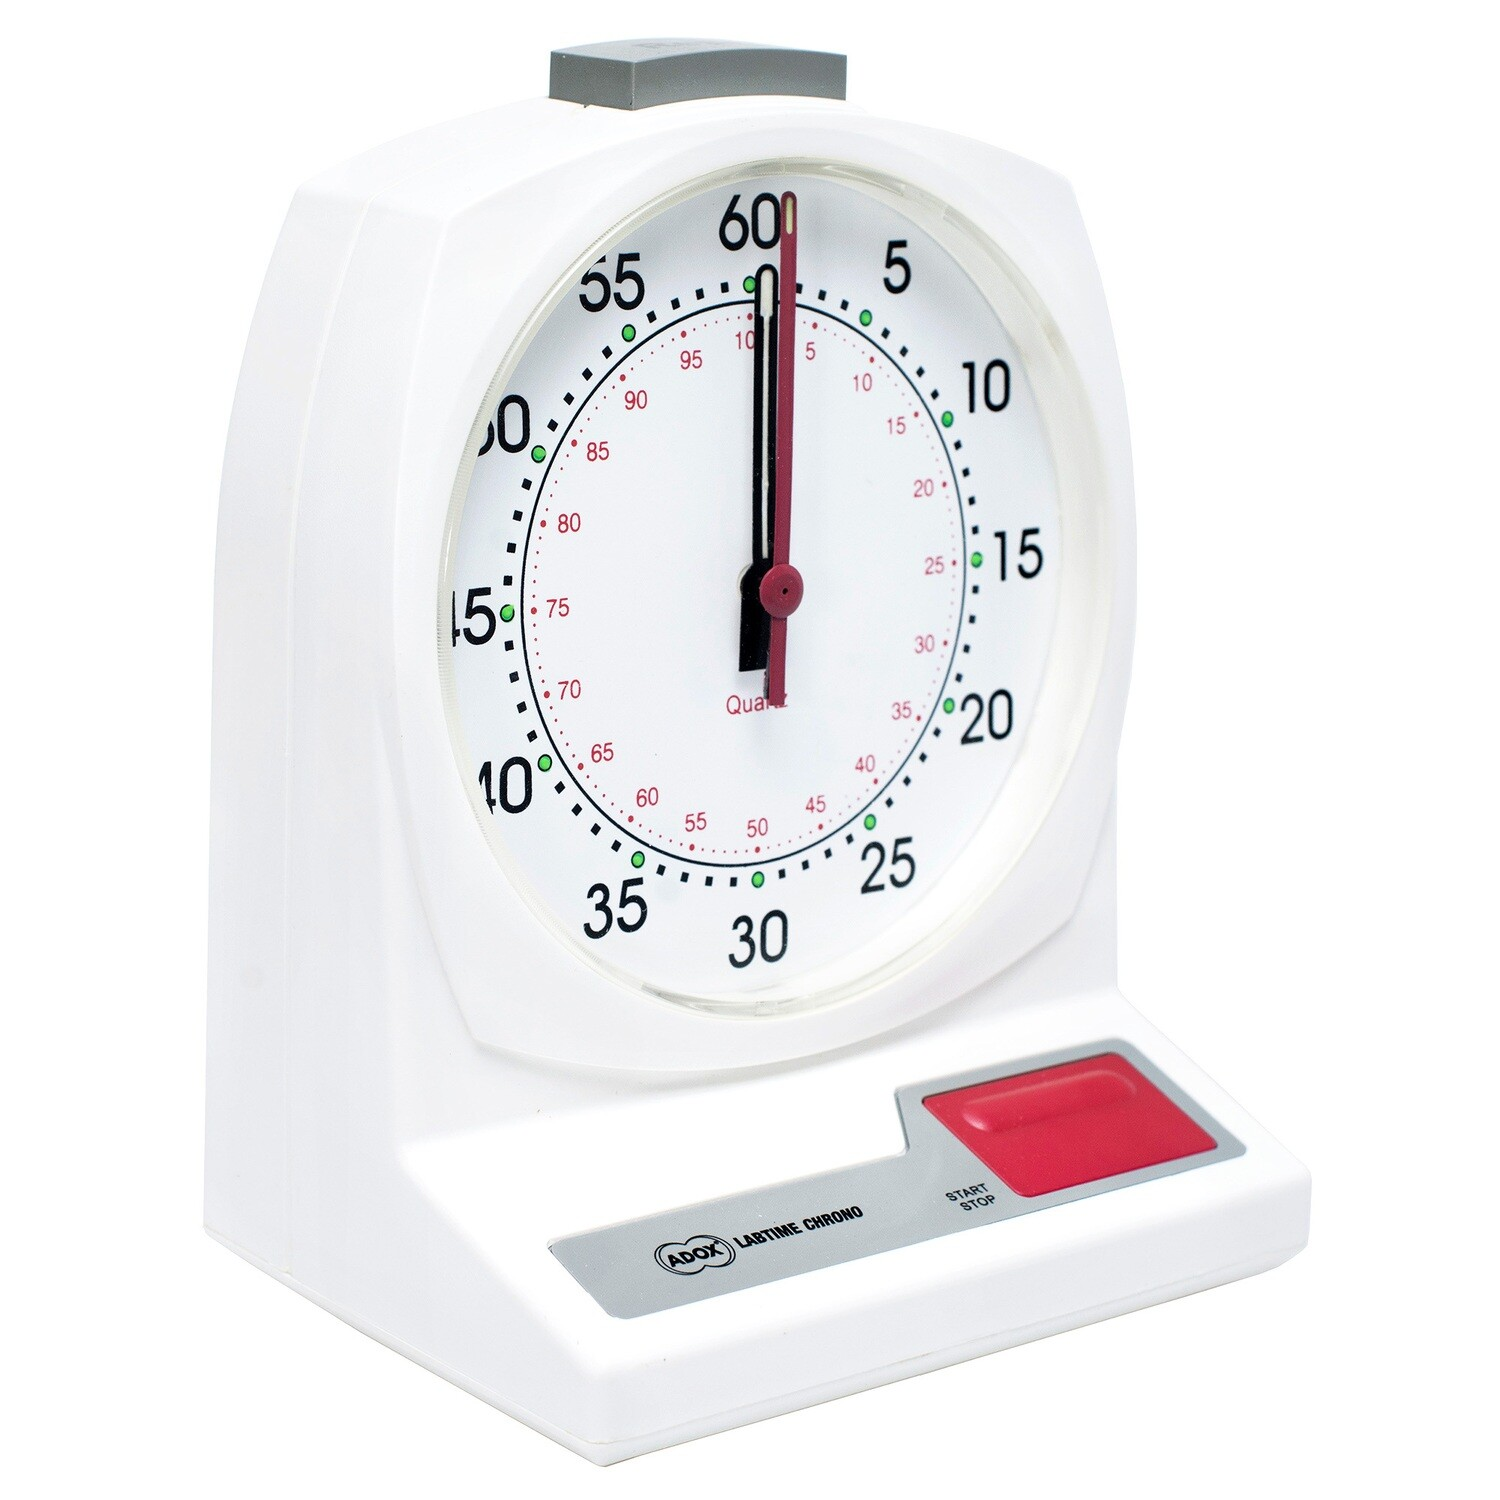 ADOX laboratory stop watch with analogue display